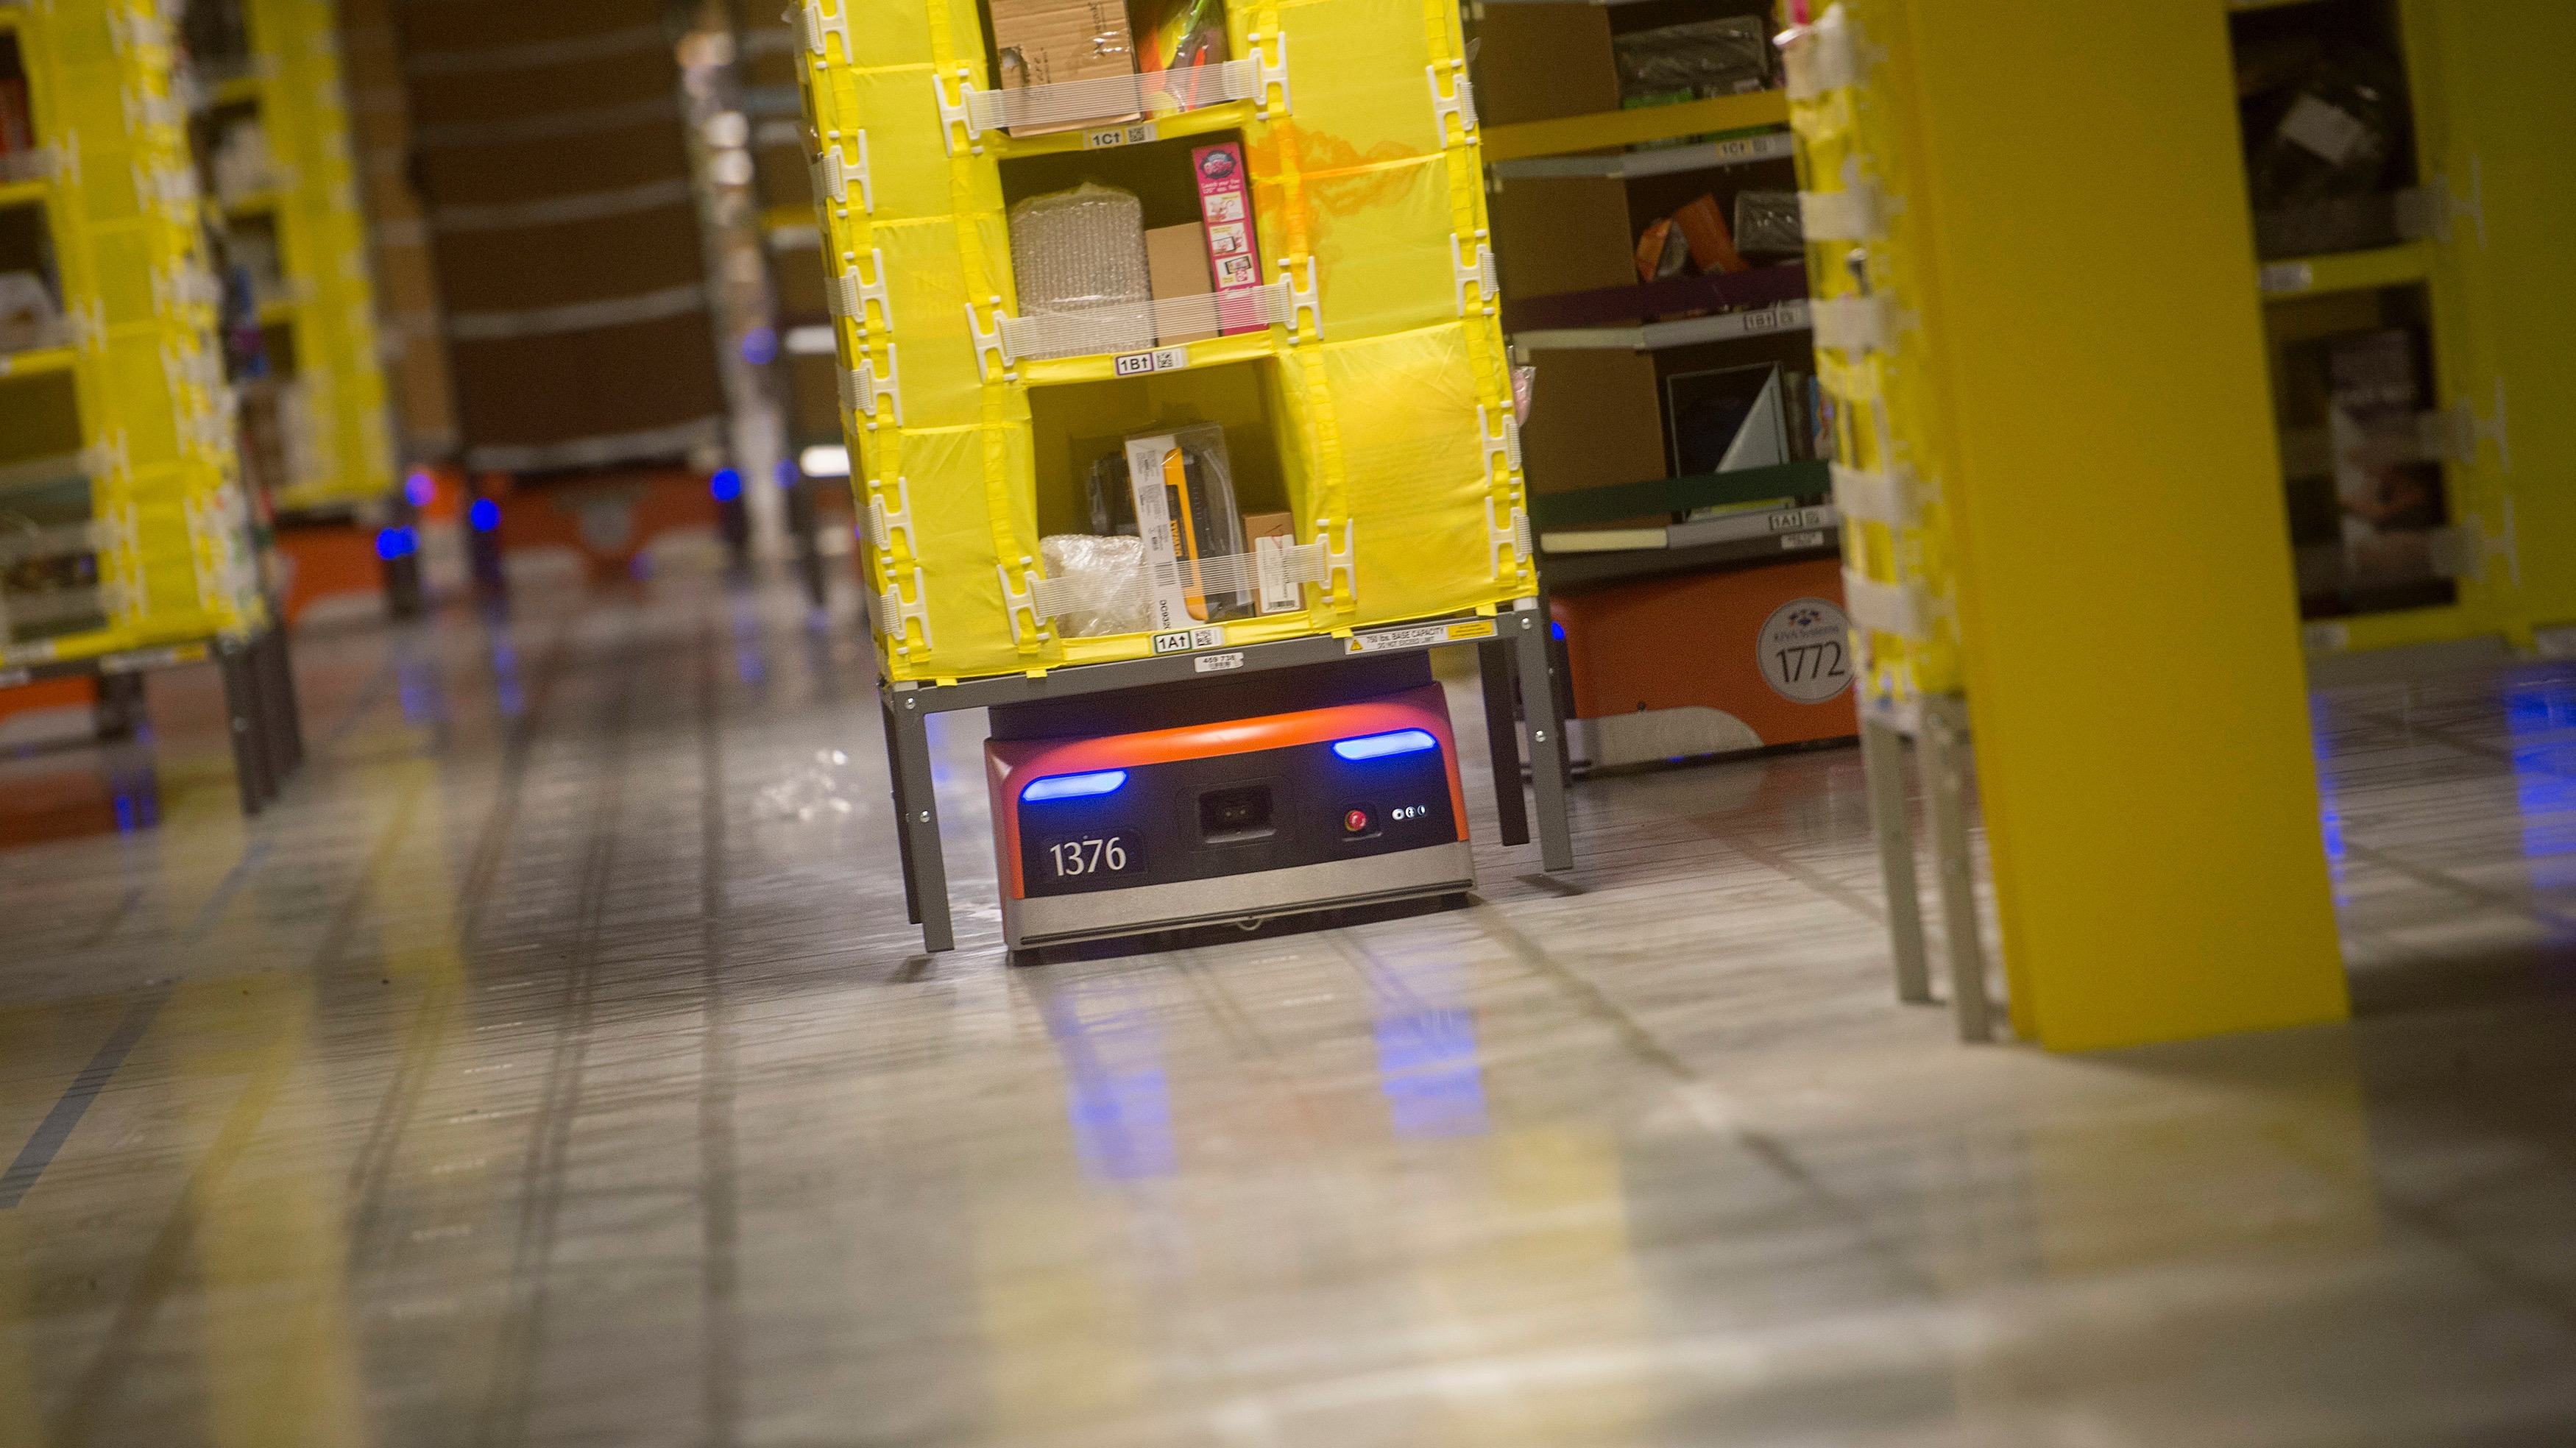 Google (GOOG) seems to be working on warehouse robots like